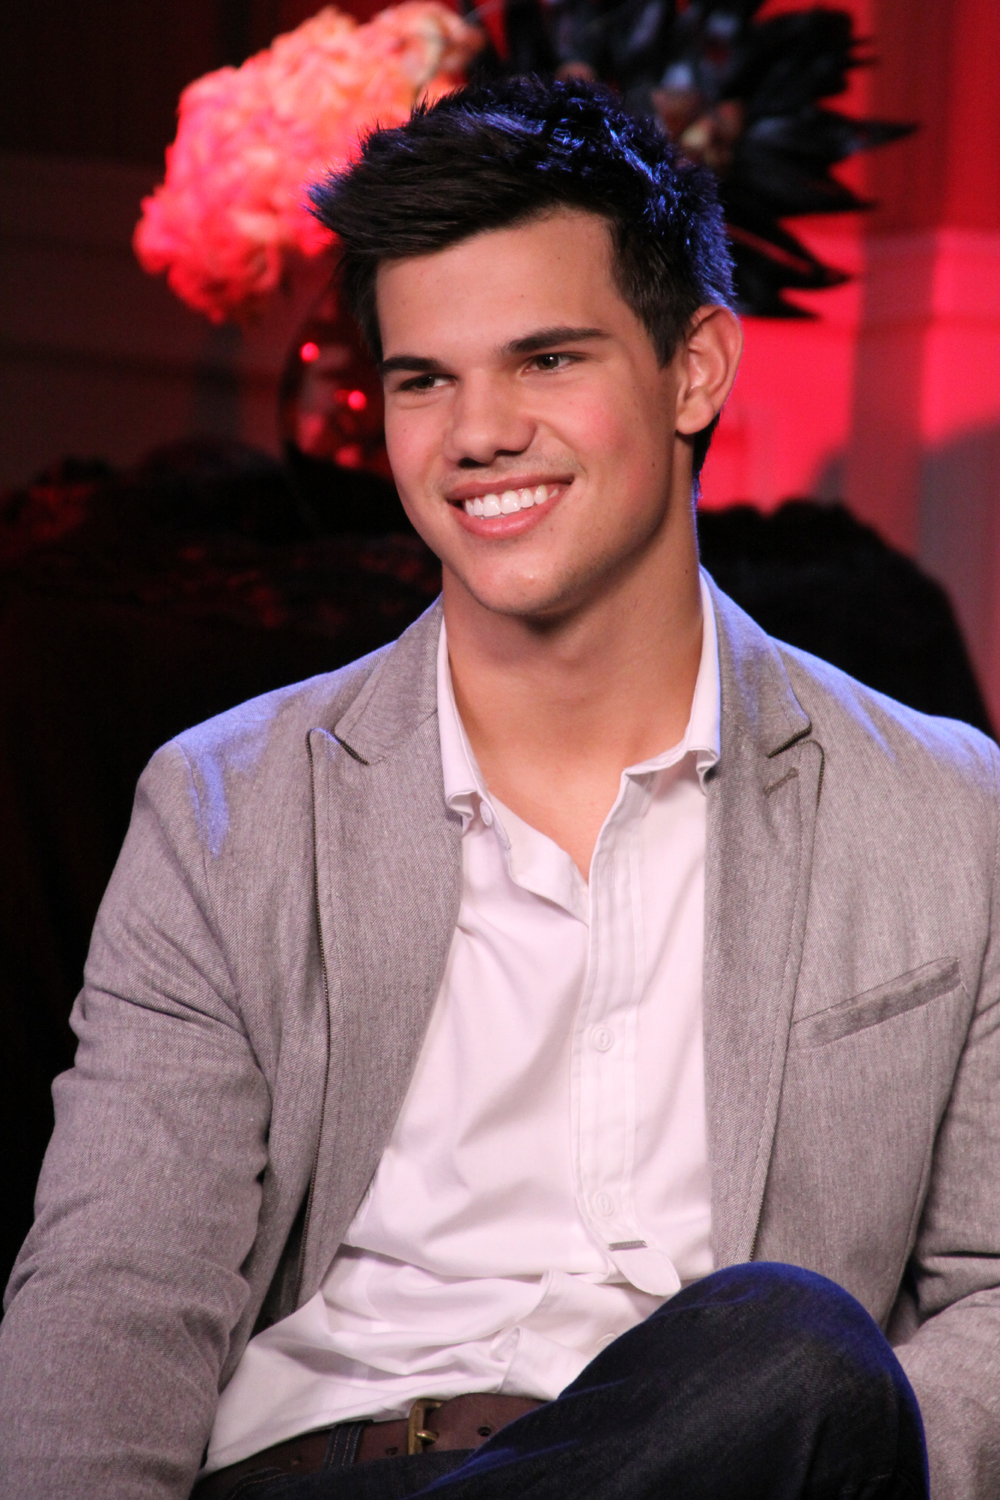 Taylor Lautner On His 'Twilight' Wig: 'I Would Not Want ...